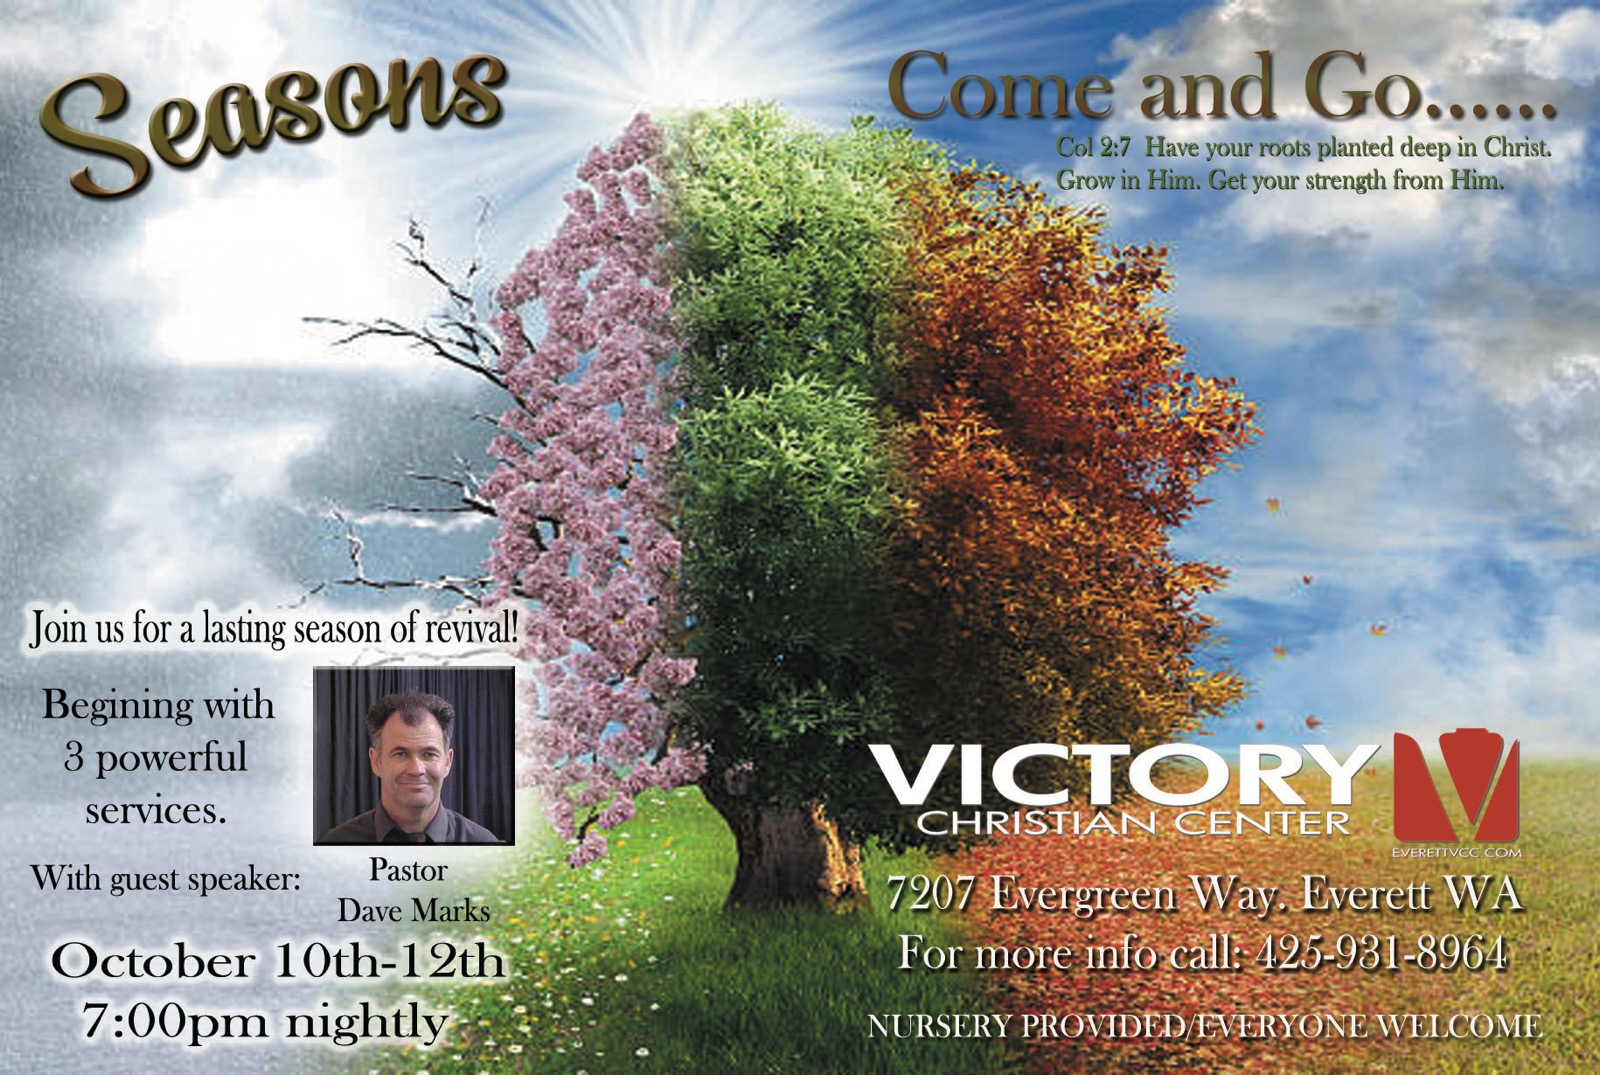 Revival Services October 10 thru 12, 7pm nightly